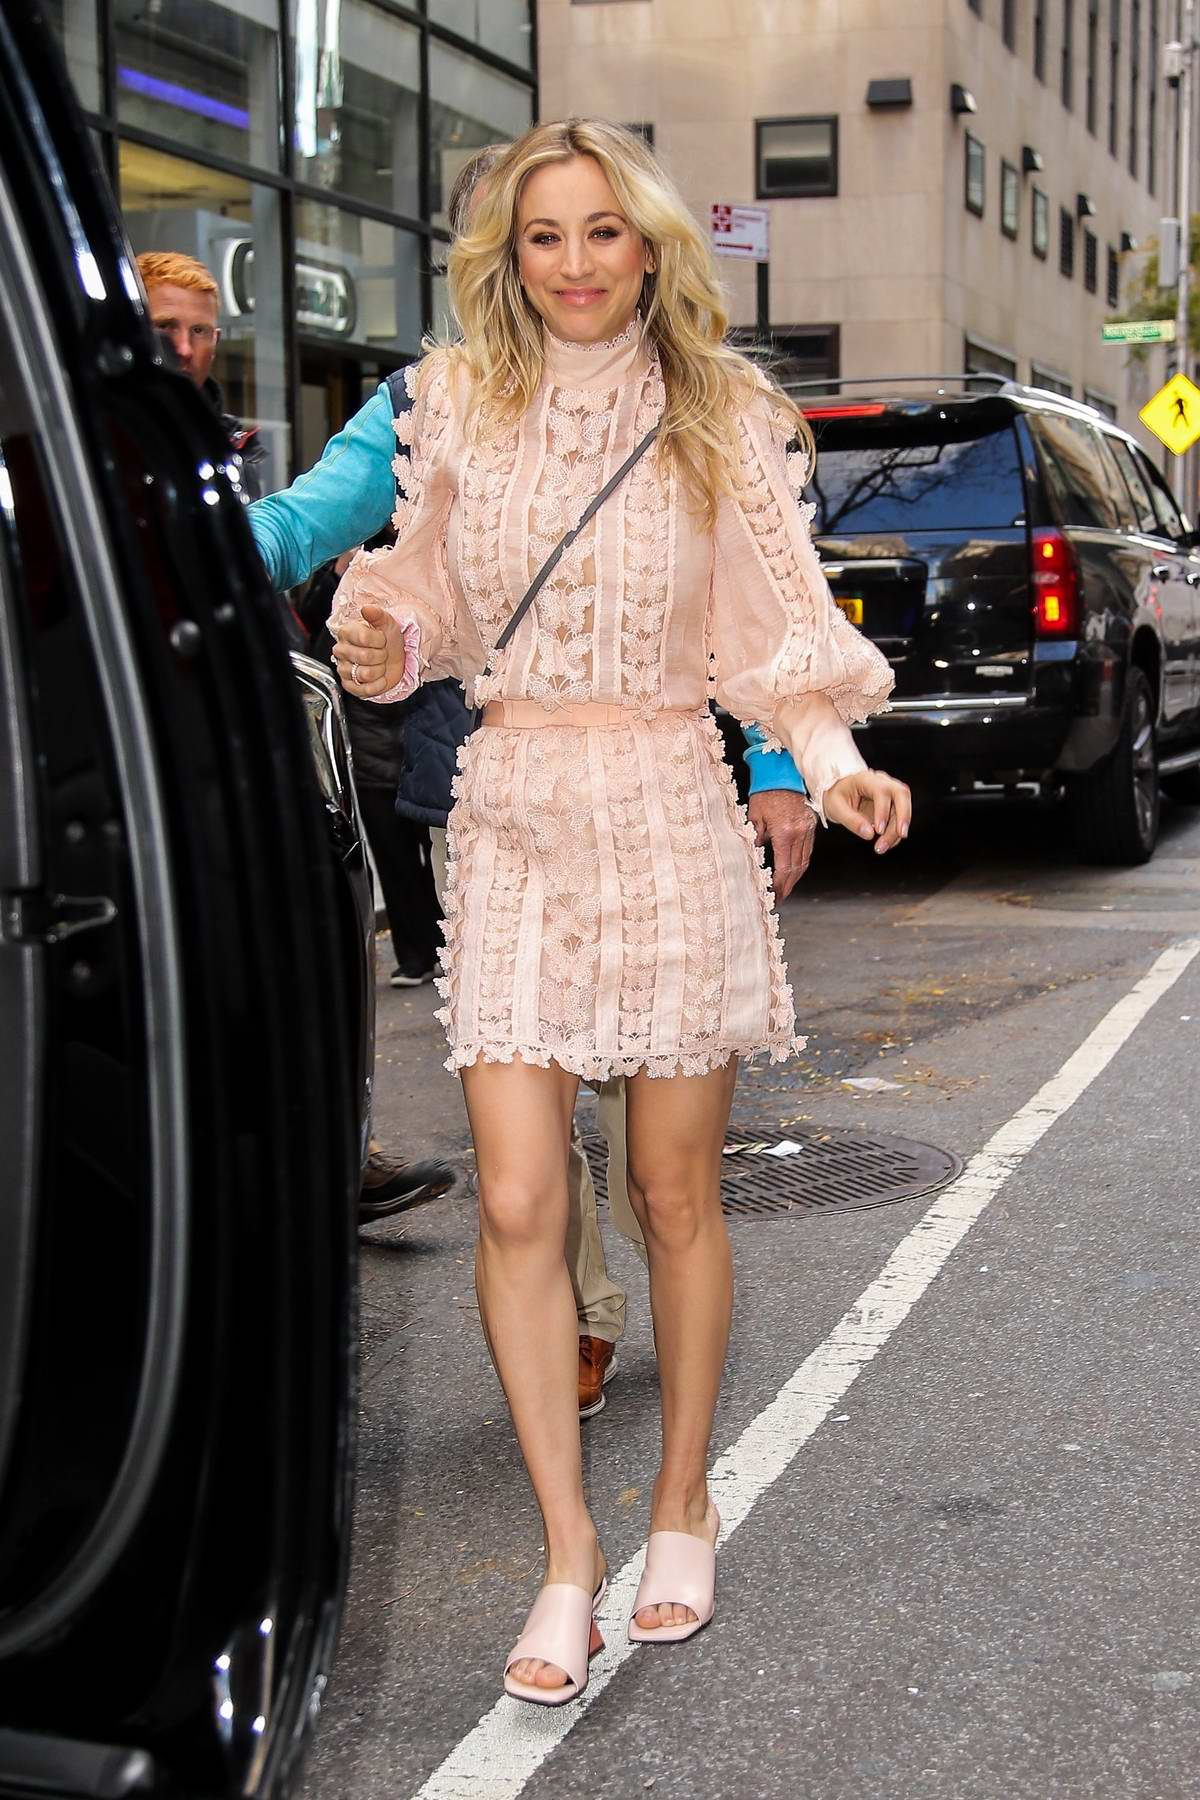 Kaley Cuoco is all smiles as she steps out in a baby pink mini dress in New York City